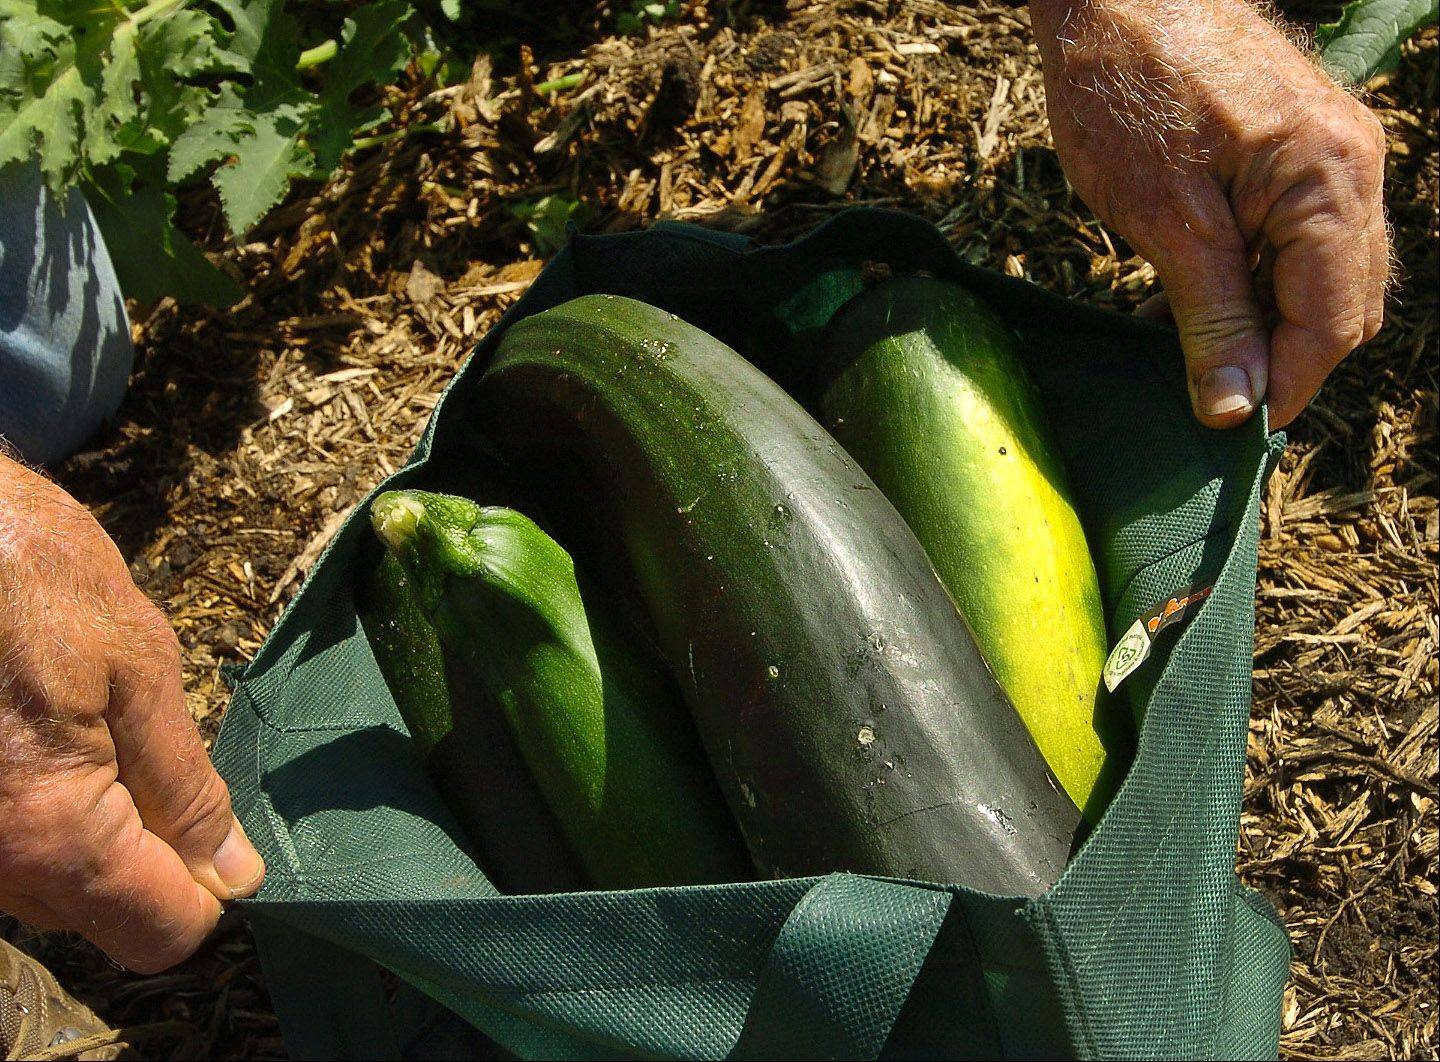 The garden behind Covenant Church in Schaumburg is planted mostly with tomatoes, but also includes some zucchini.